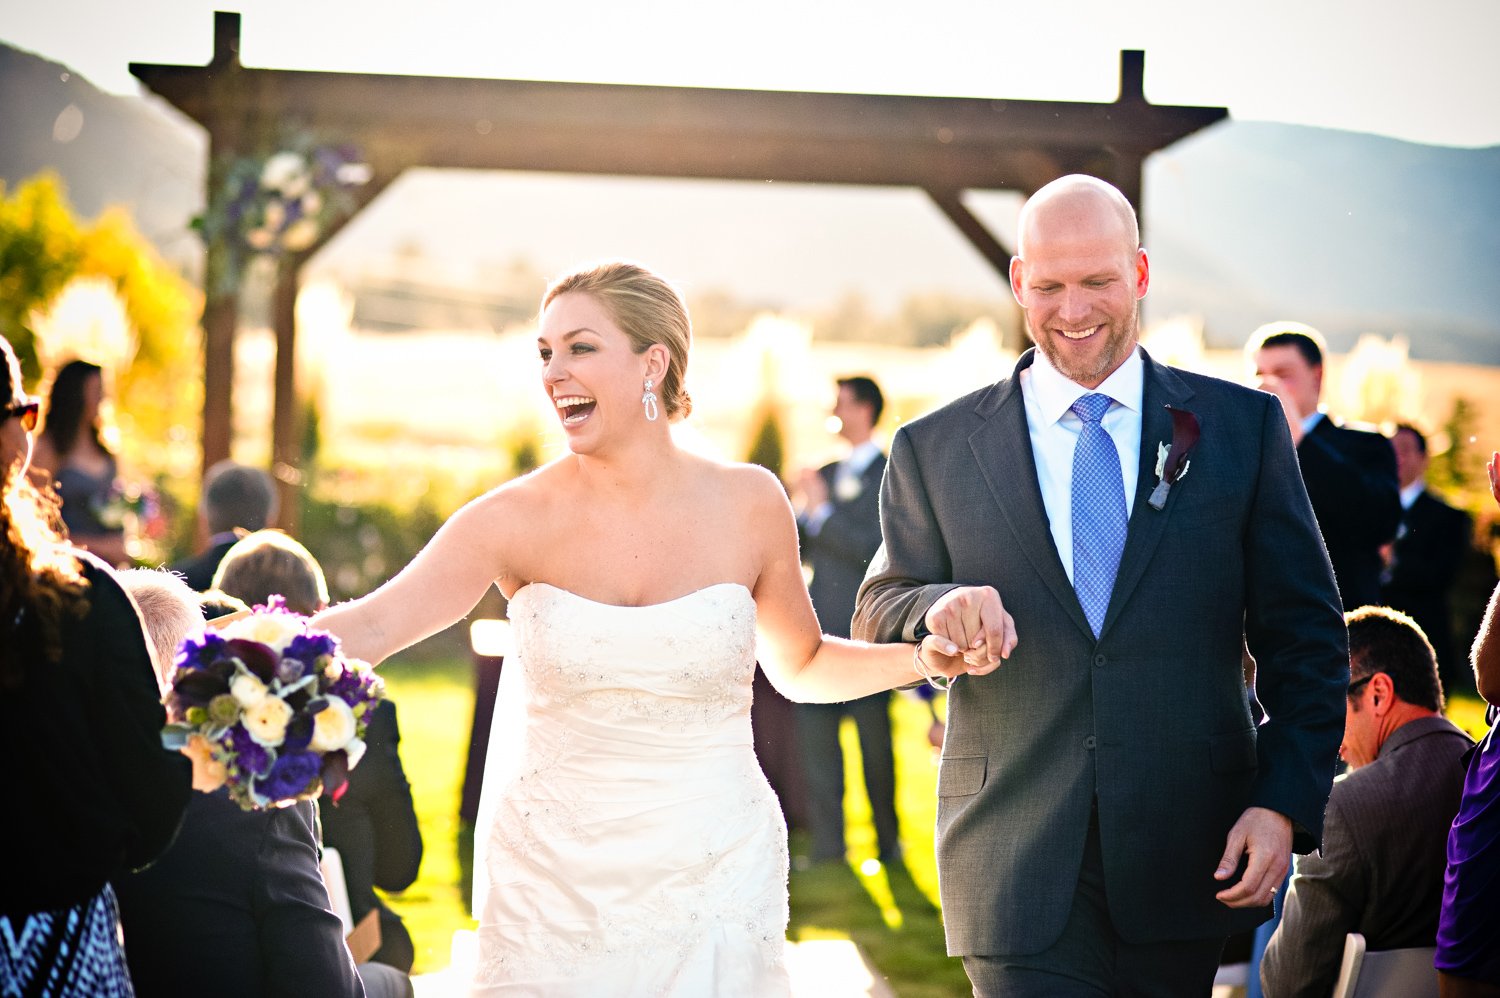 Crooked_Willow_Farms__Sedalia_Wedding_031.JPG